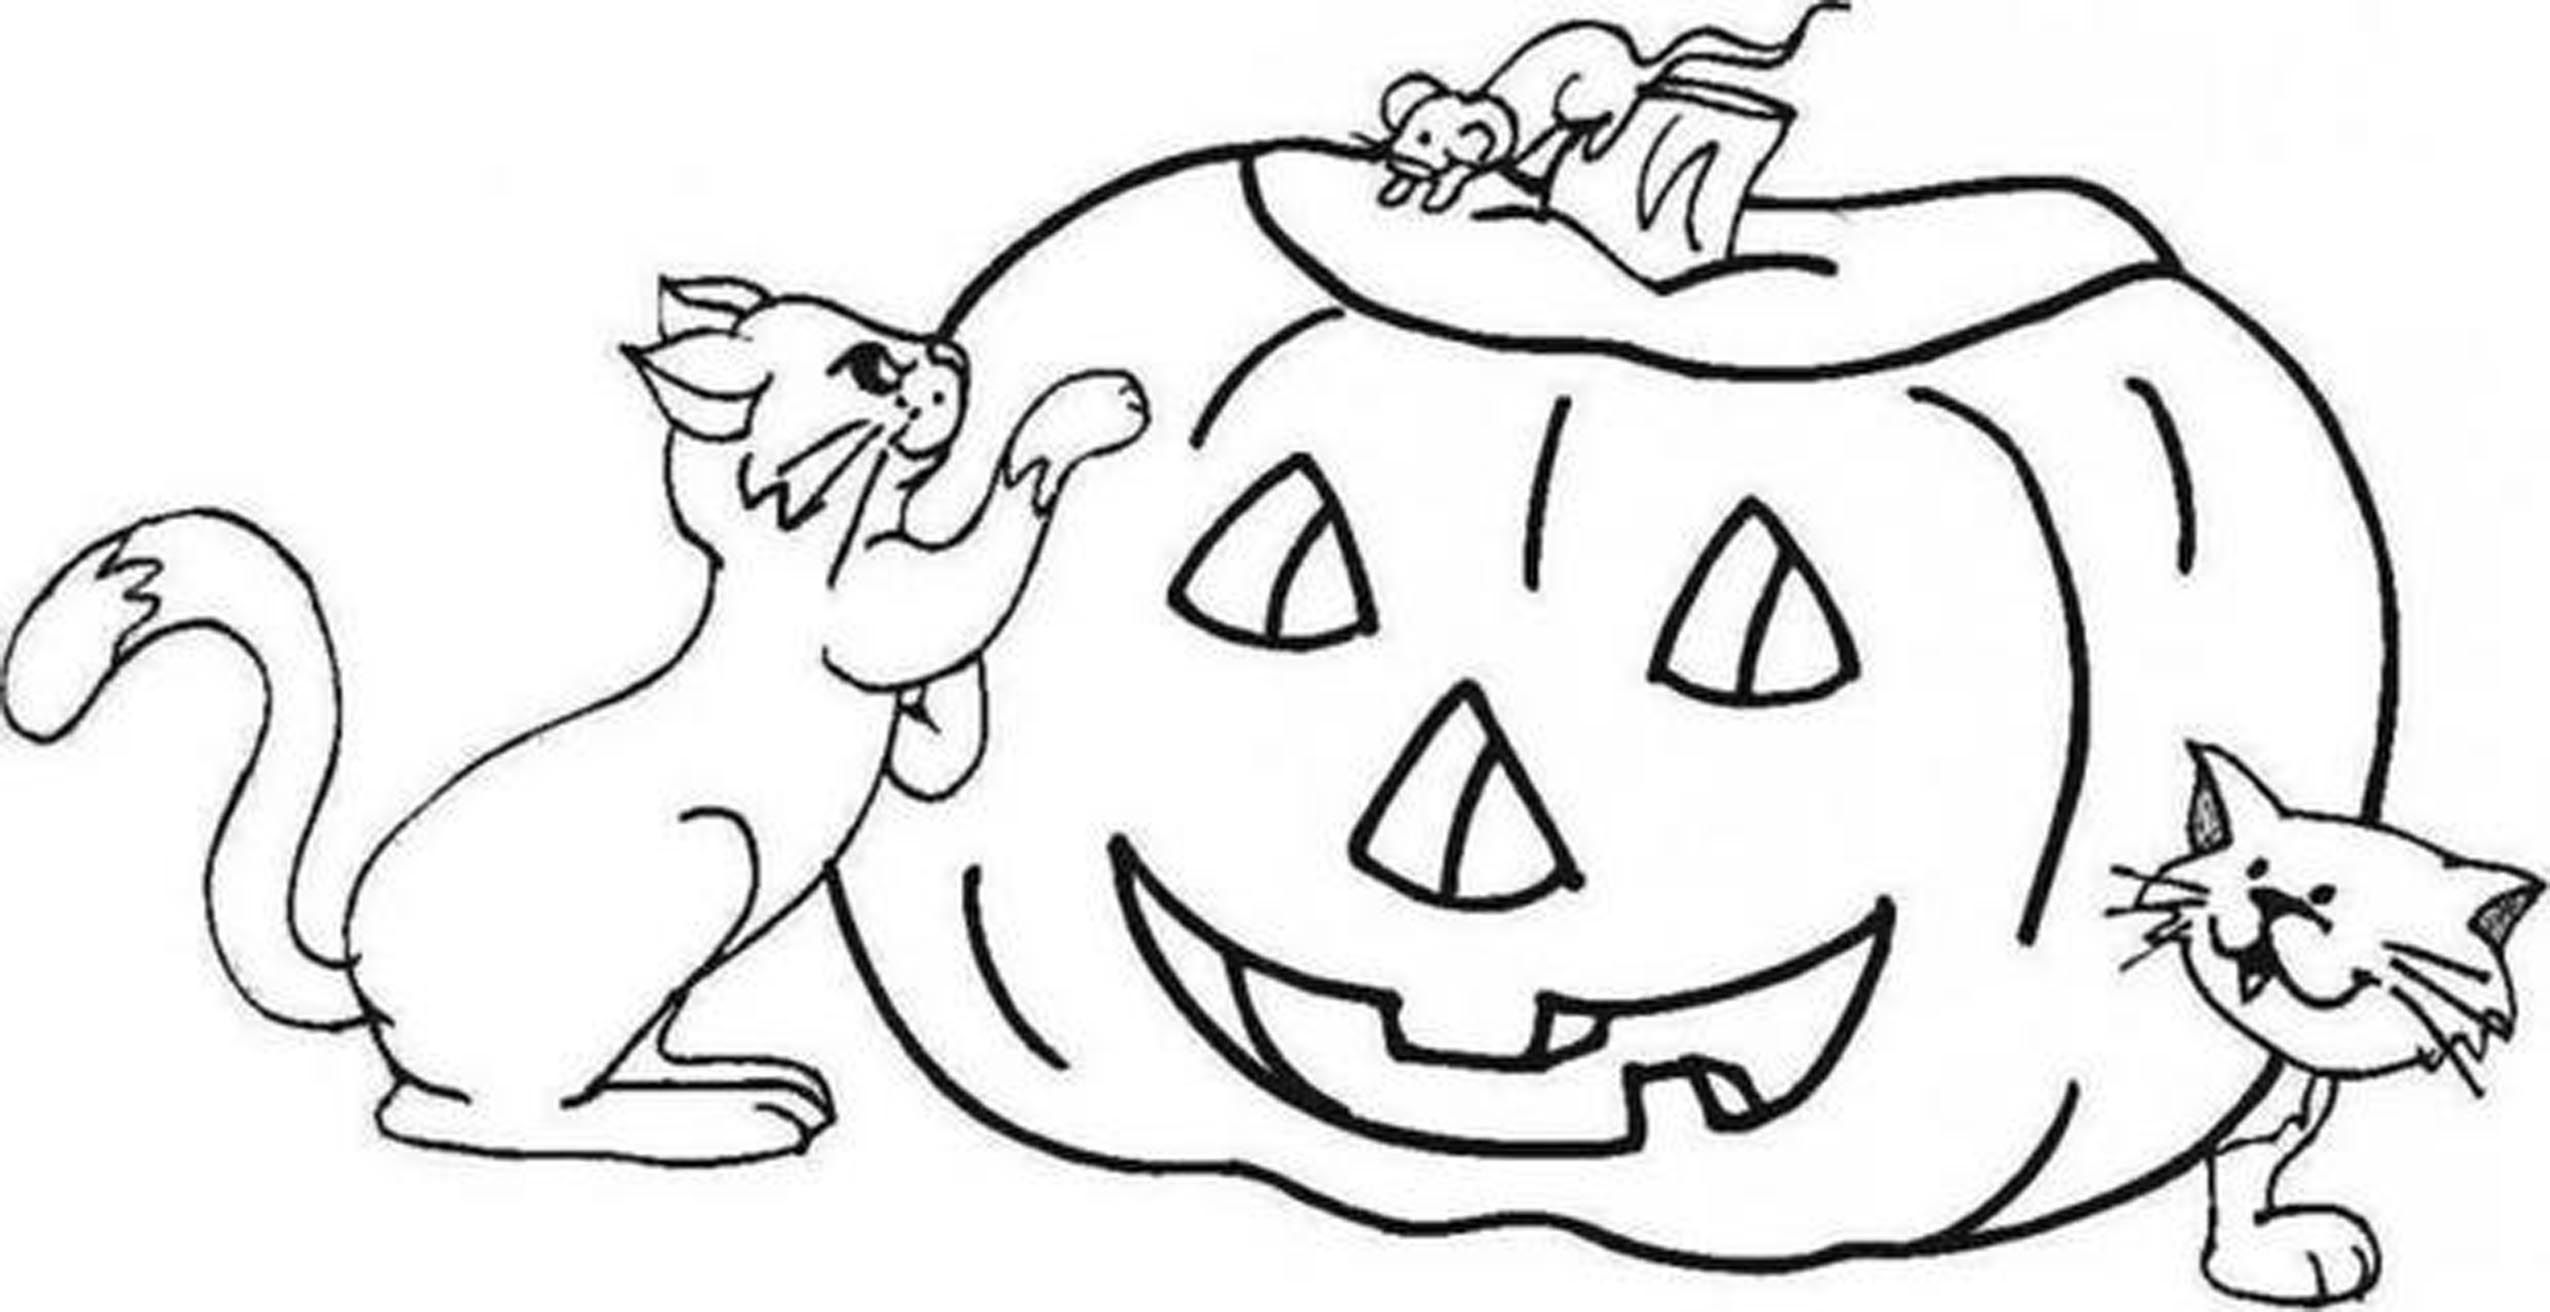 Fall Pumpkin Coloring Pages To Print - Coloring Home